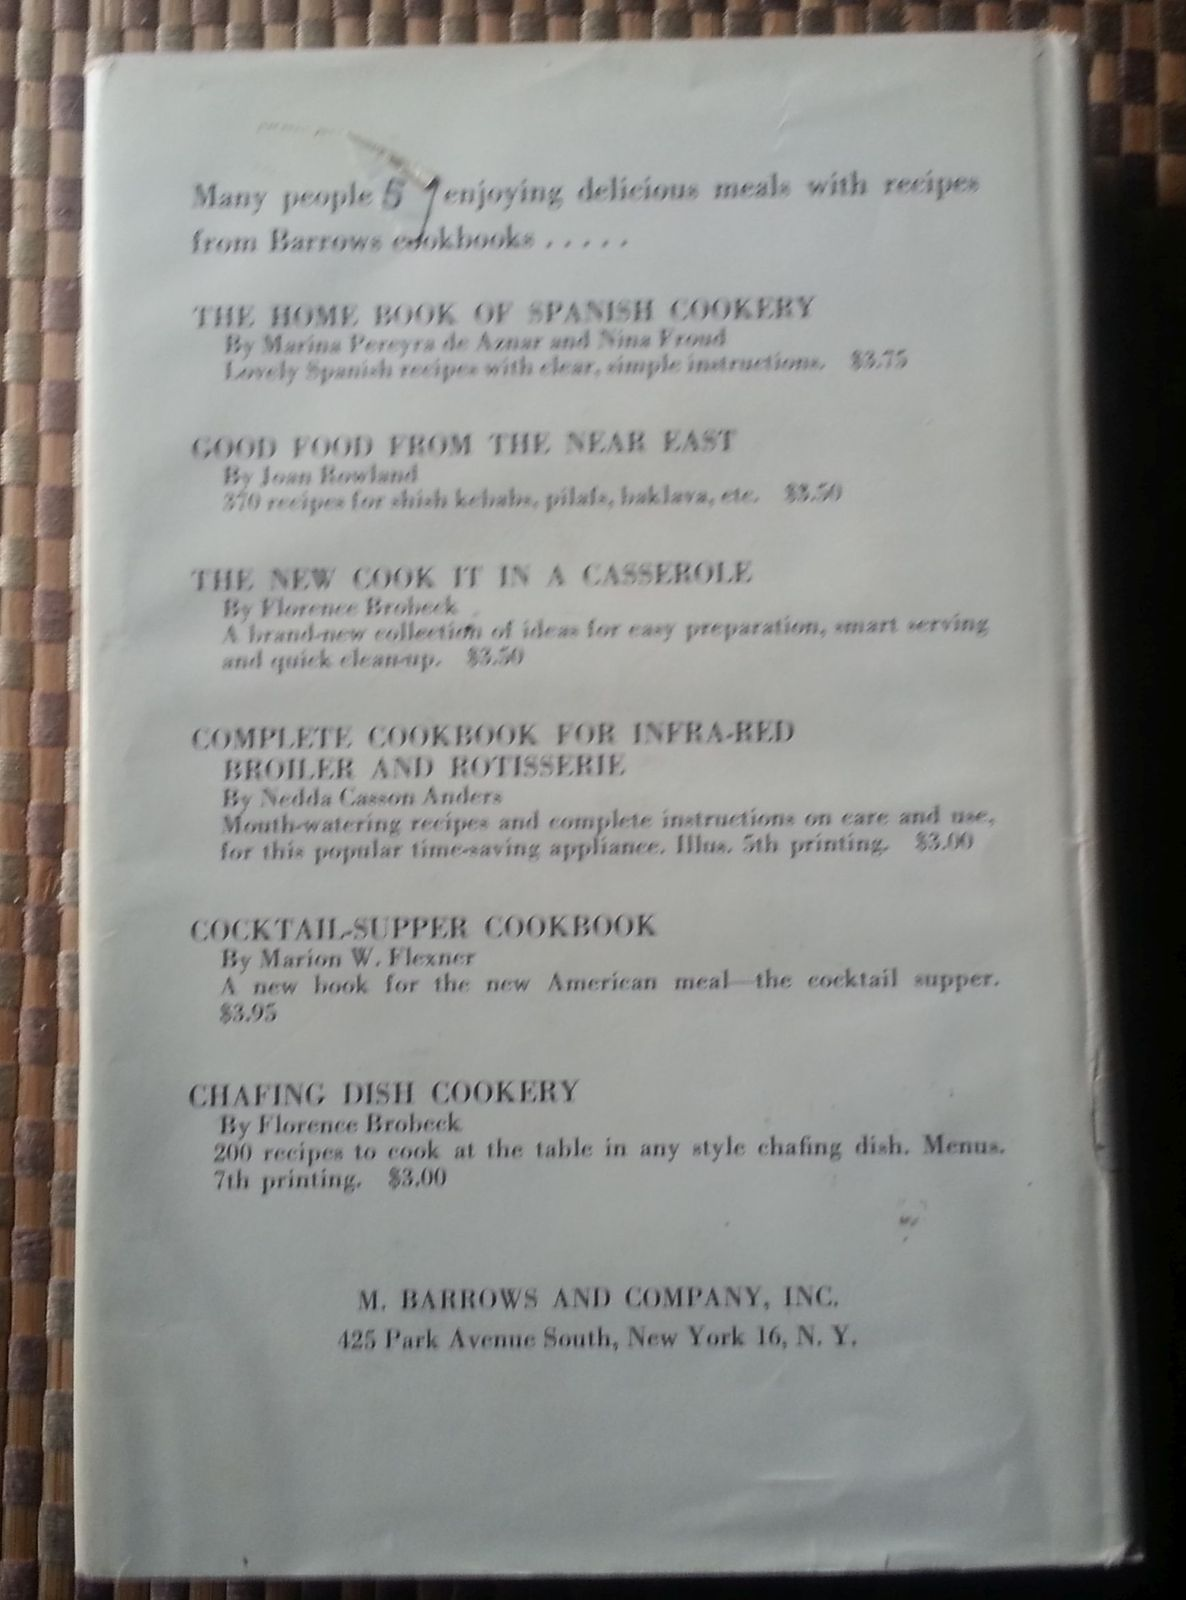 The Country Week End Cookbook by Hila and Louis Colman 1961 HBDJ